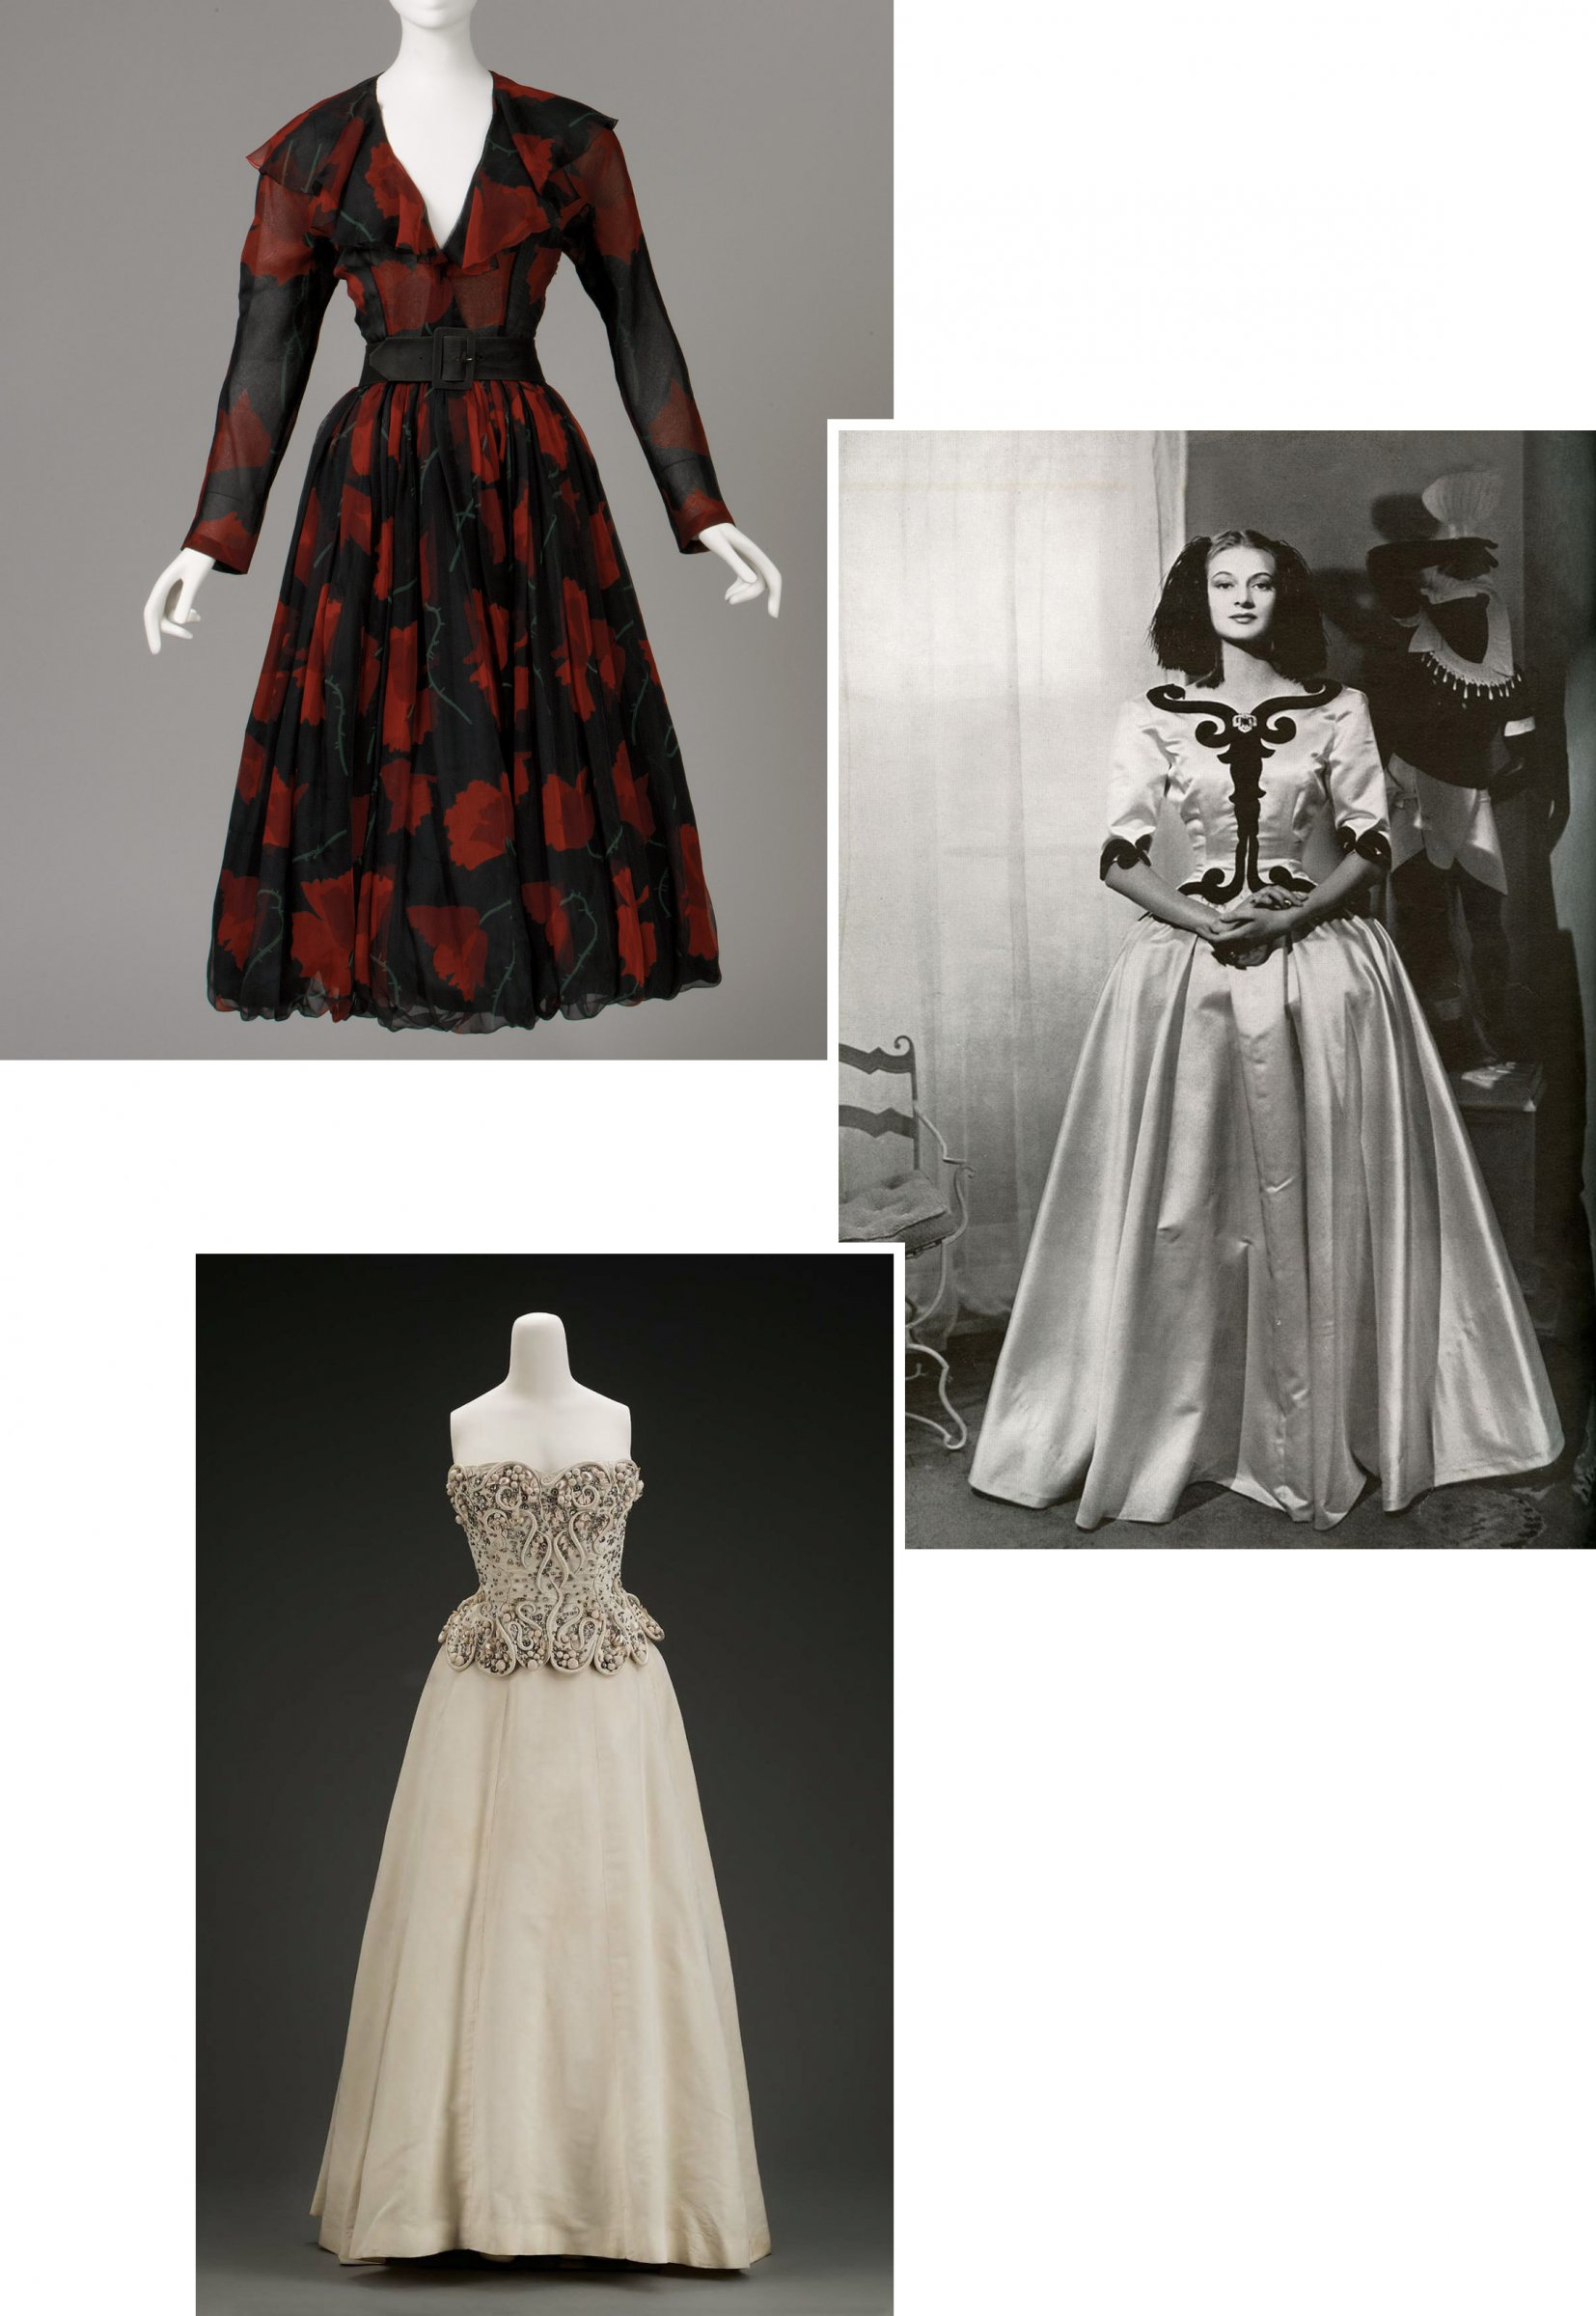 ee5cf6d4386 The History of Balenciaga in 6 Points | The Italian Rêve